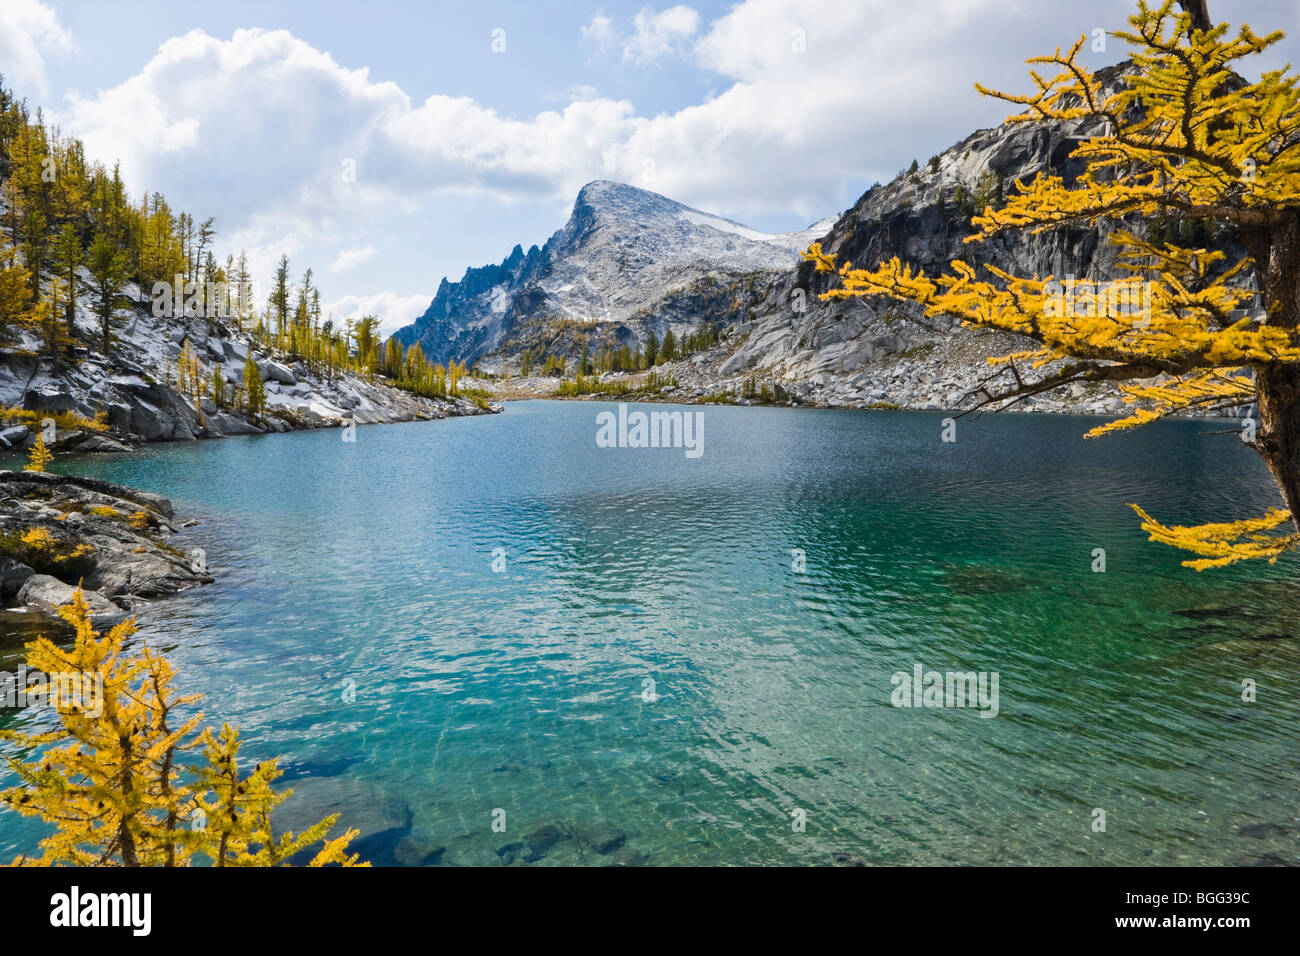 Perfection Lake with Little Annapurna in the background, Enchantment Lakes Wilderness Area, Washington Cascades, - Stock Image